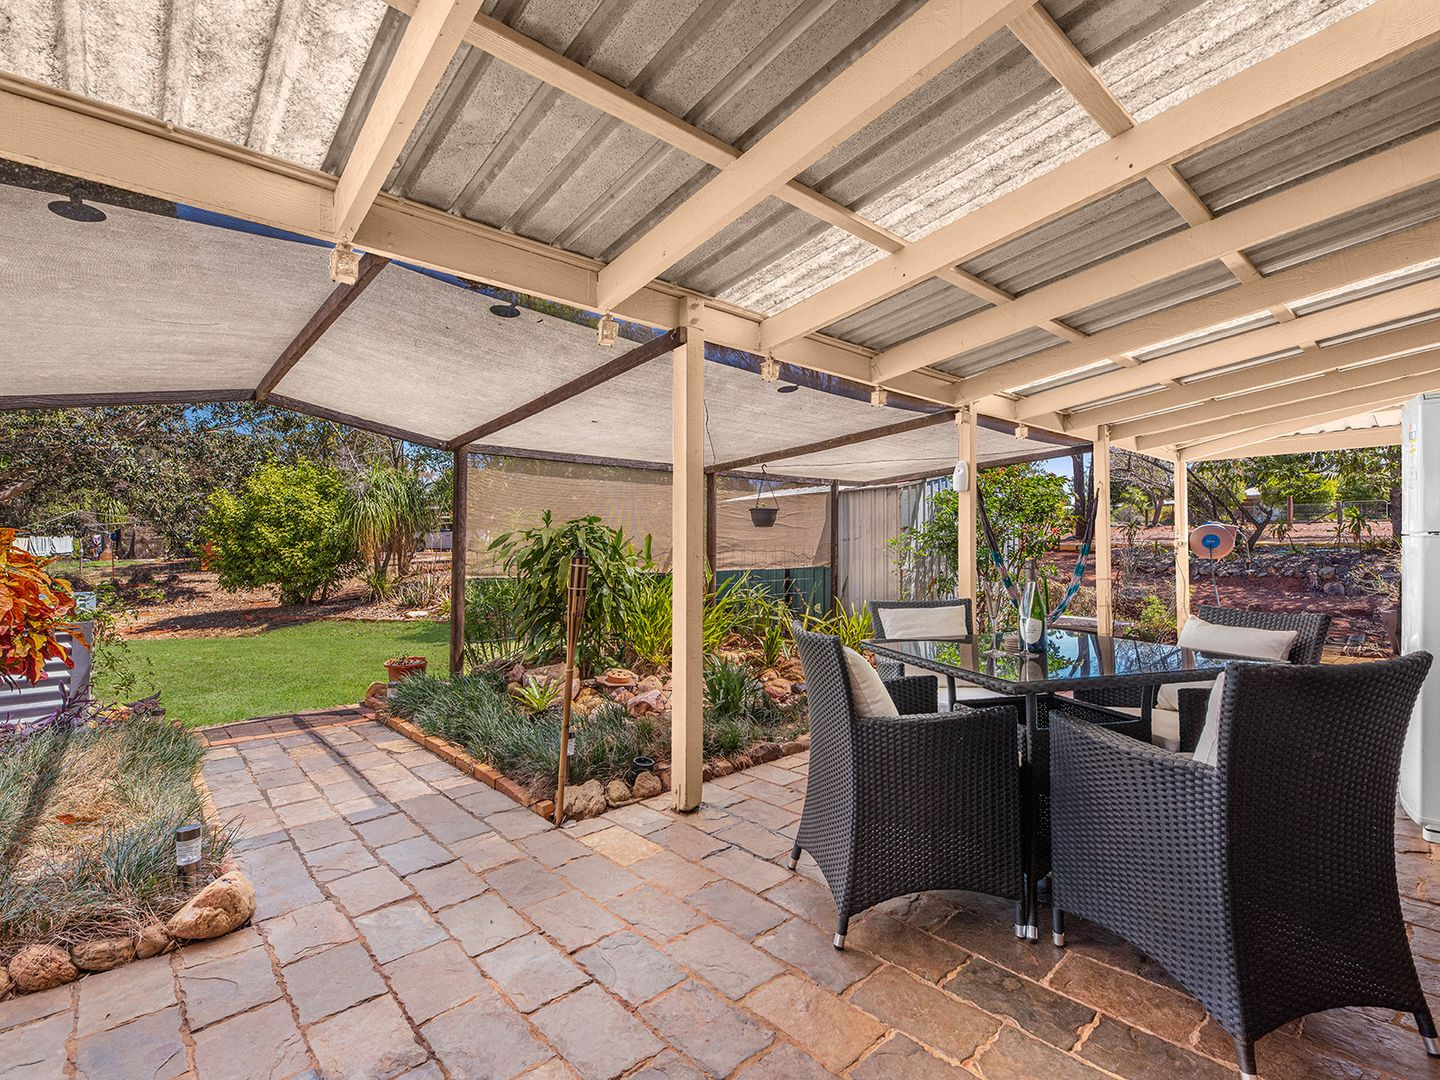 61 Lockyer View Rd, Wivenhoe Pocket QLD 4306, Image 2